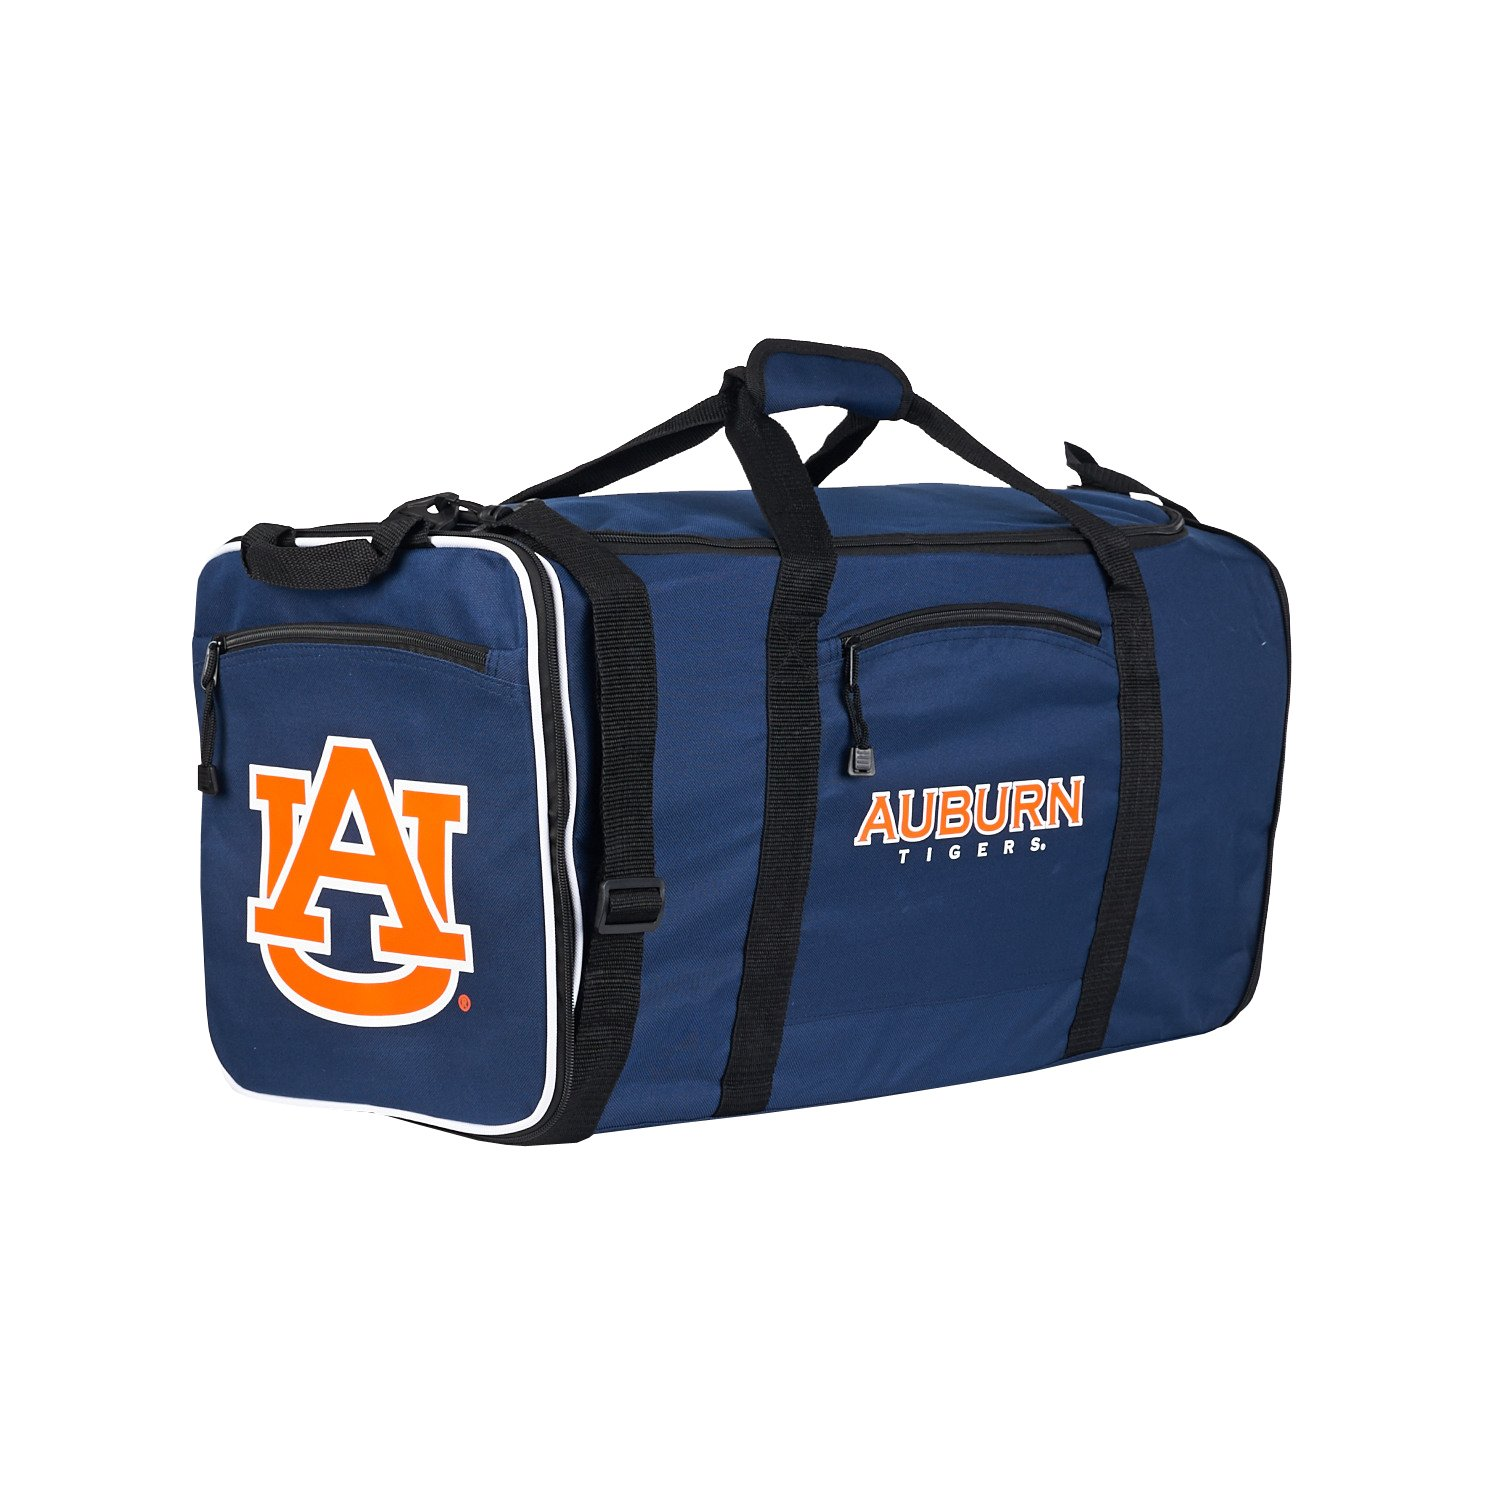 Officially Licensed NCAA Auburn Tigers Steal Duffel Bag by The Northwest Company (Image #2)